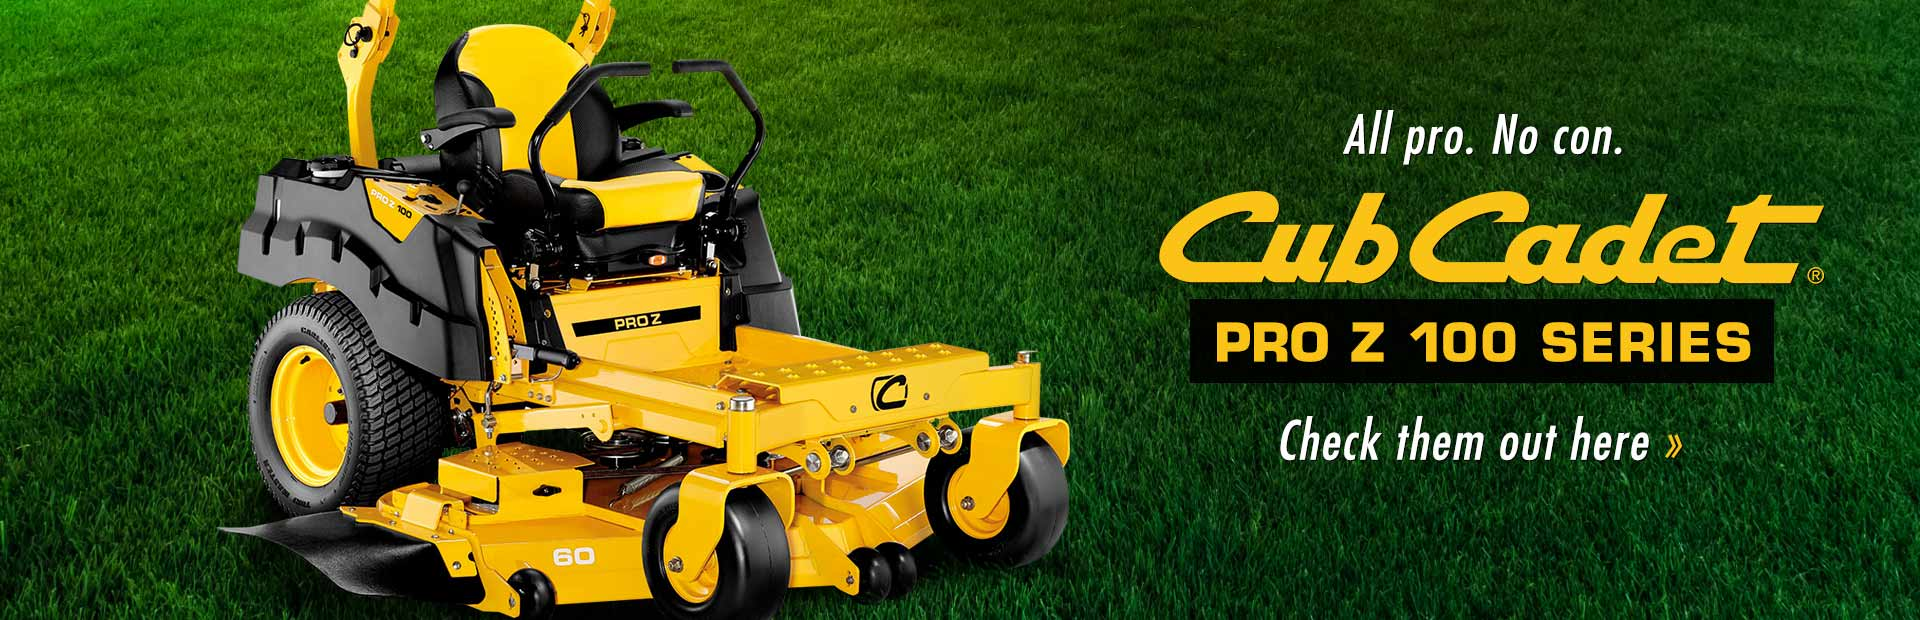 Cub Cadet Pro Z 100 Series: Click here to view the models.